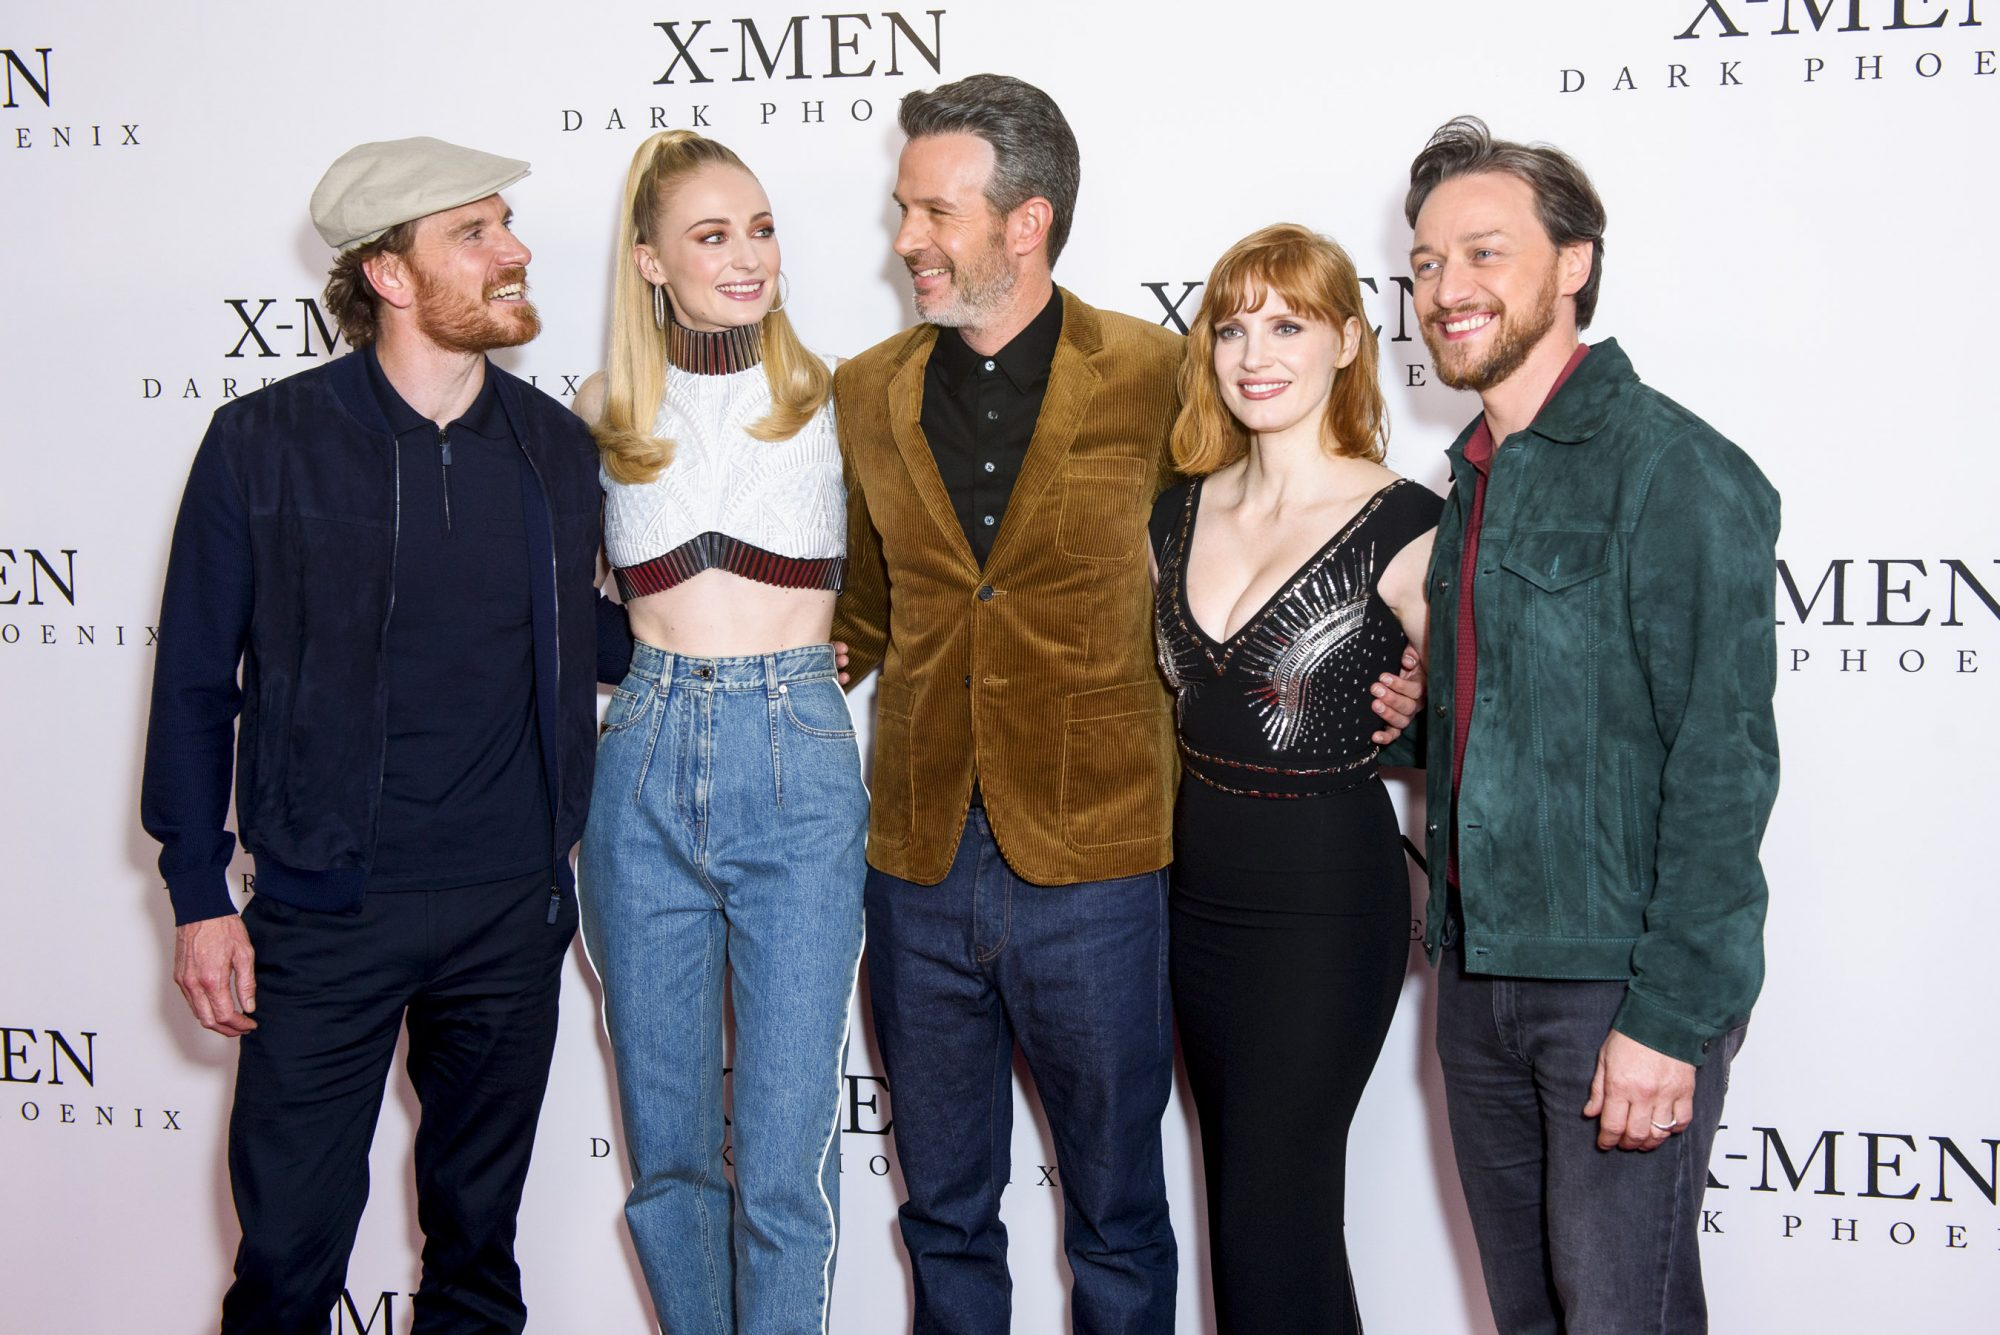 """LONDON, ENGLAND - MAY 22: Michael Fassbender, Sophie Turner, Simon Kinberg, Jessica Chastain and James McAvoy attend an exclusive fan event for """"X-Men: Dark Phoenix"""" at Picturehouse Central on May 22, 2019 in London, England. (Photo by Joe Maher/Getty Images)"""